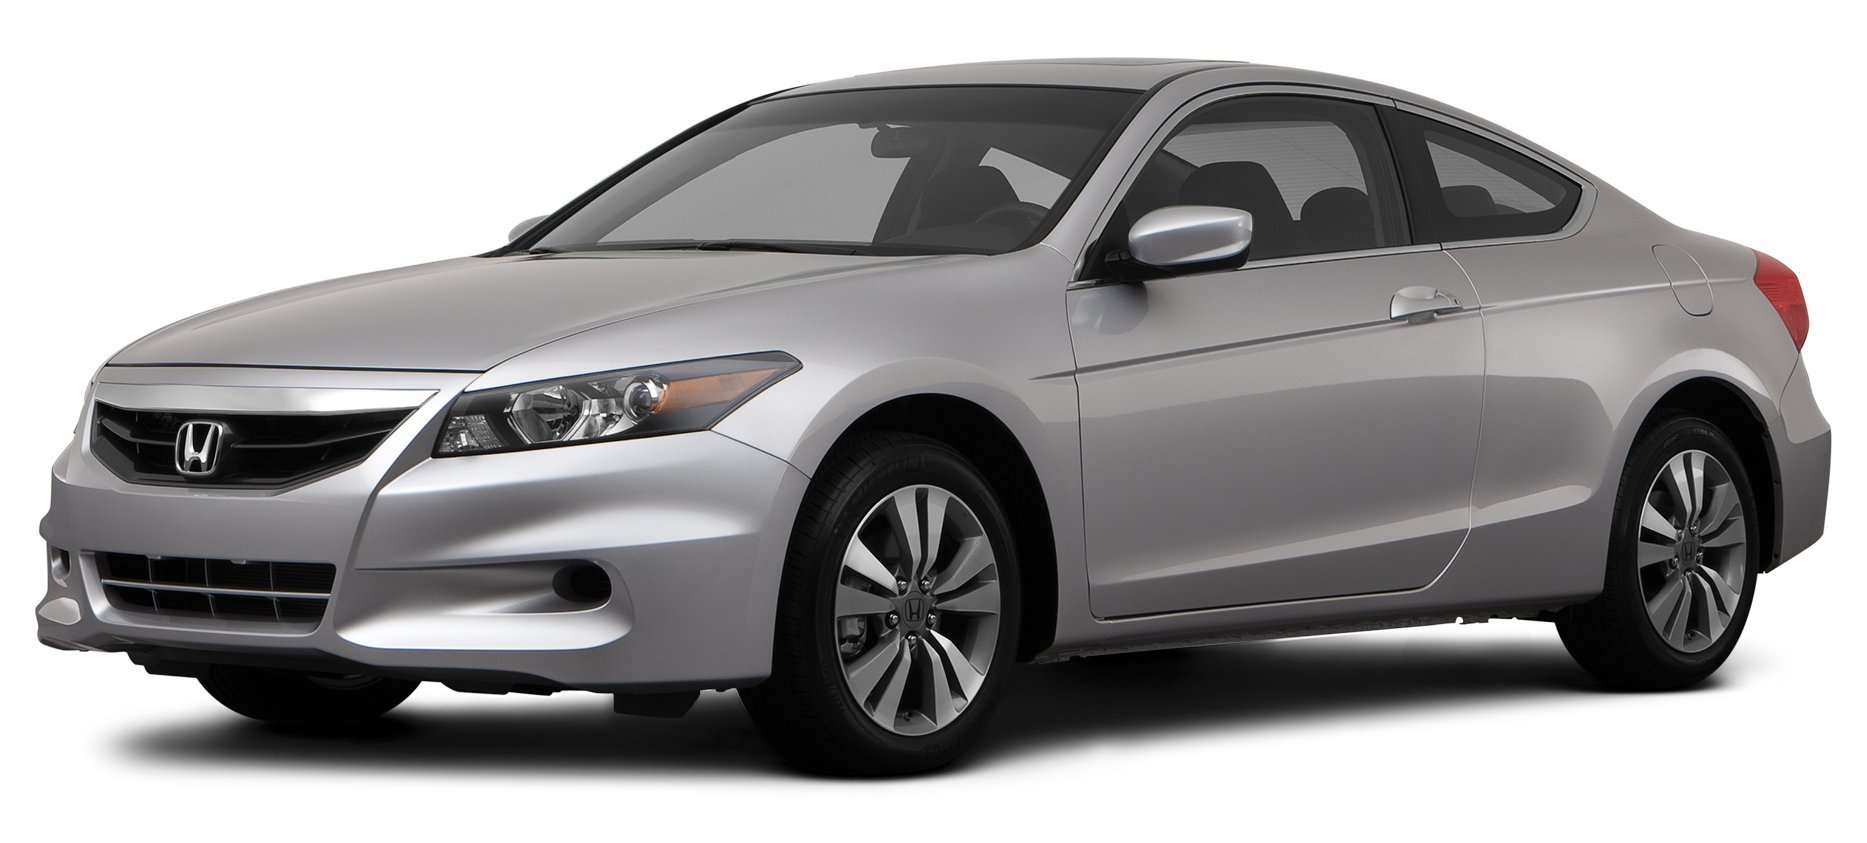 2012 honda accord reviews images and specs vehicles. Black Bedroom Furniture Sets. Home Design Ideas